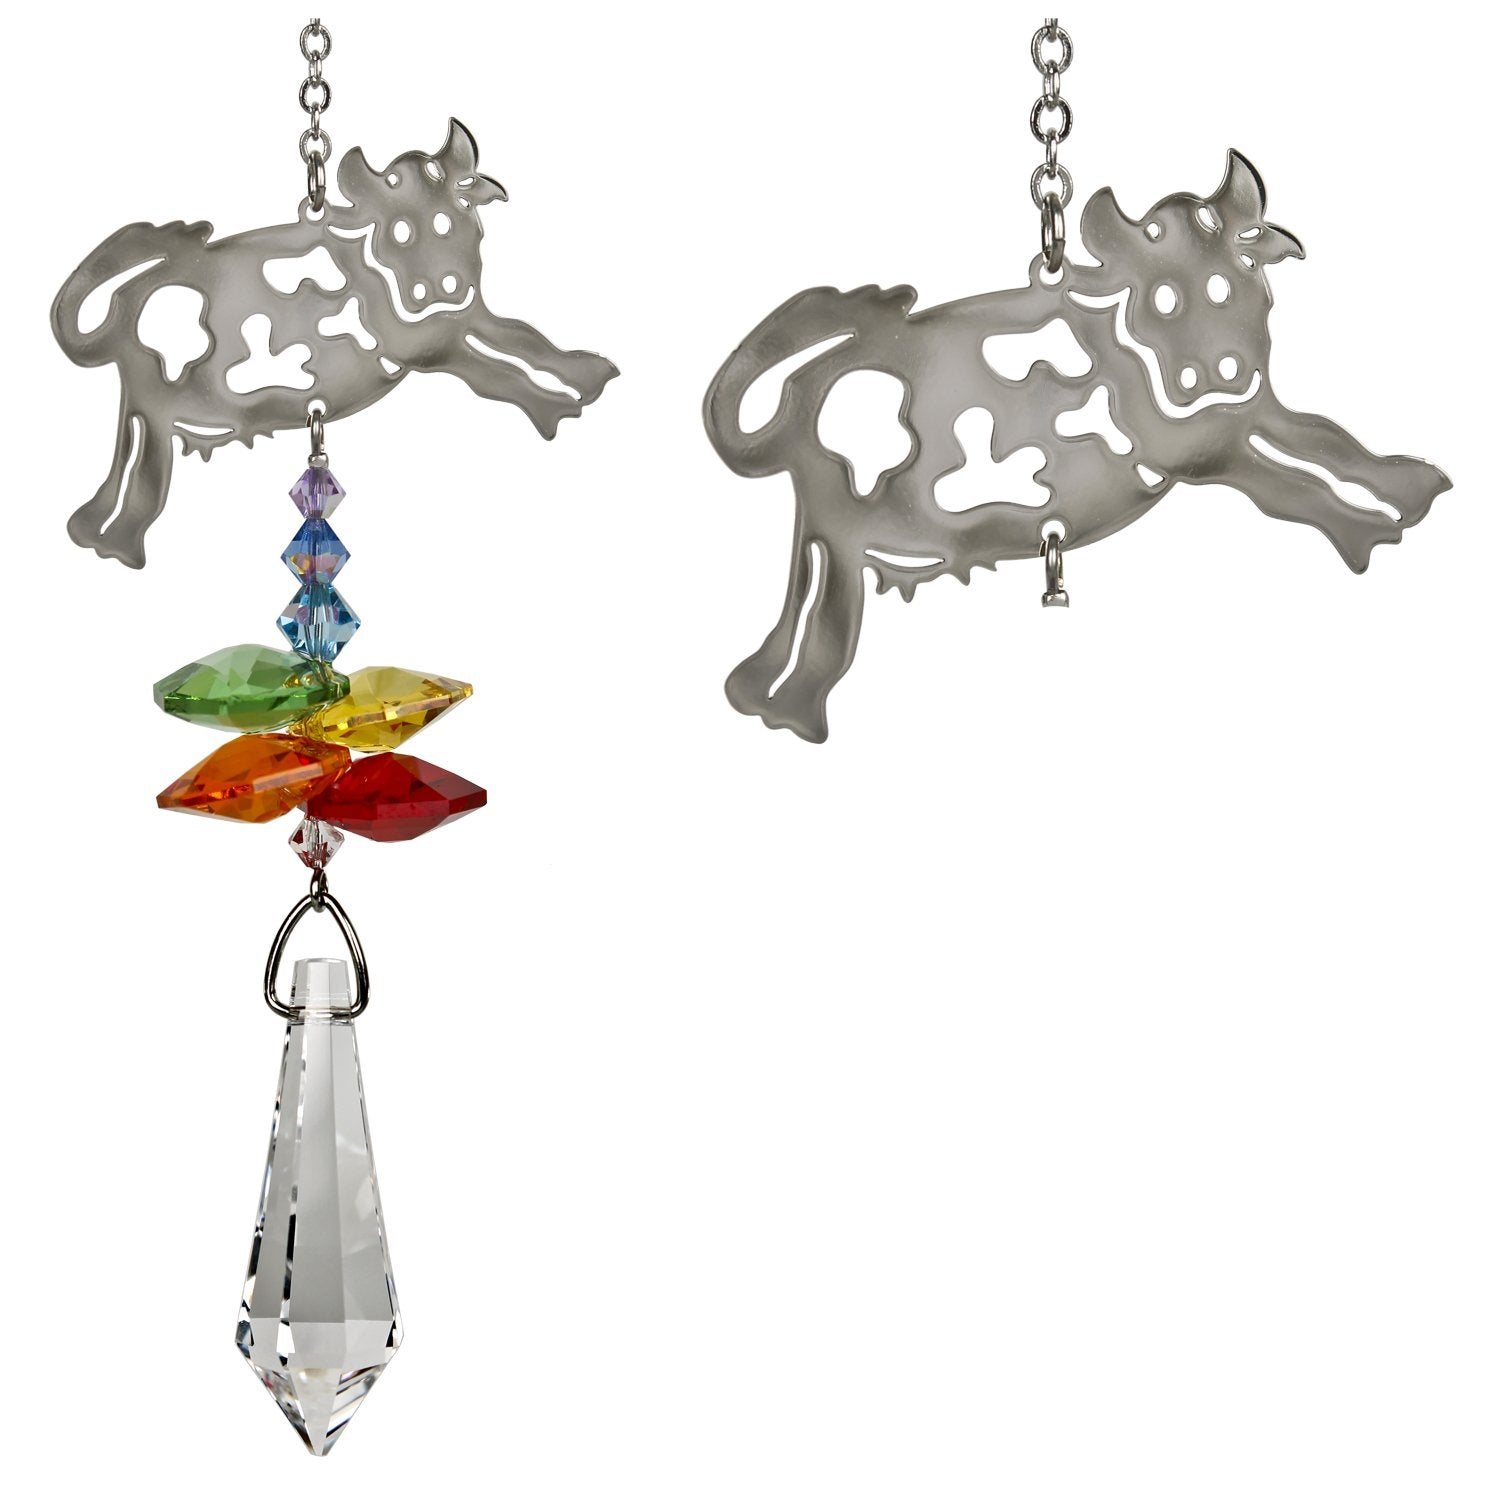 Crystal Fantasy Suncatcher - Cow main image